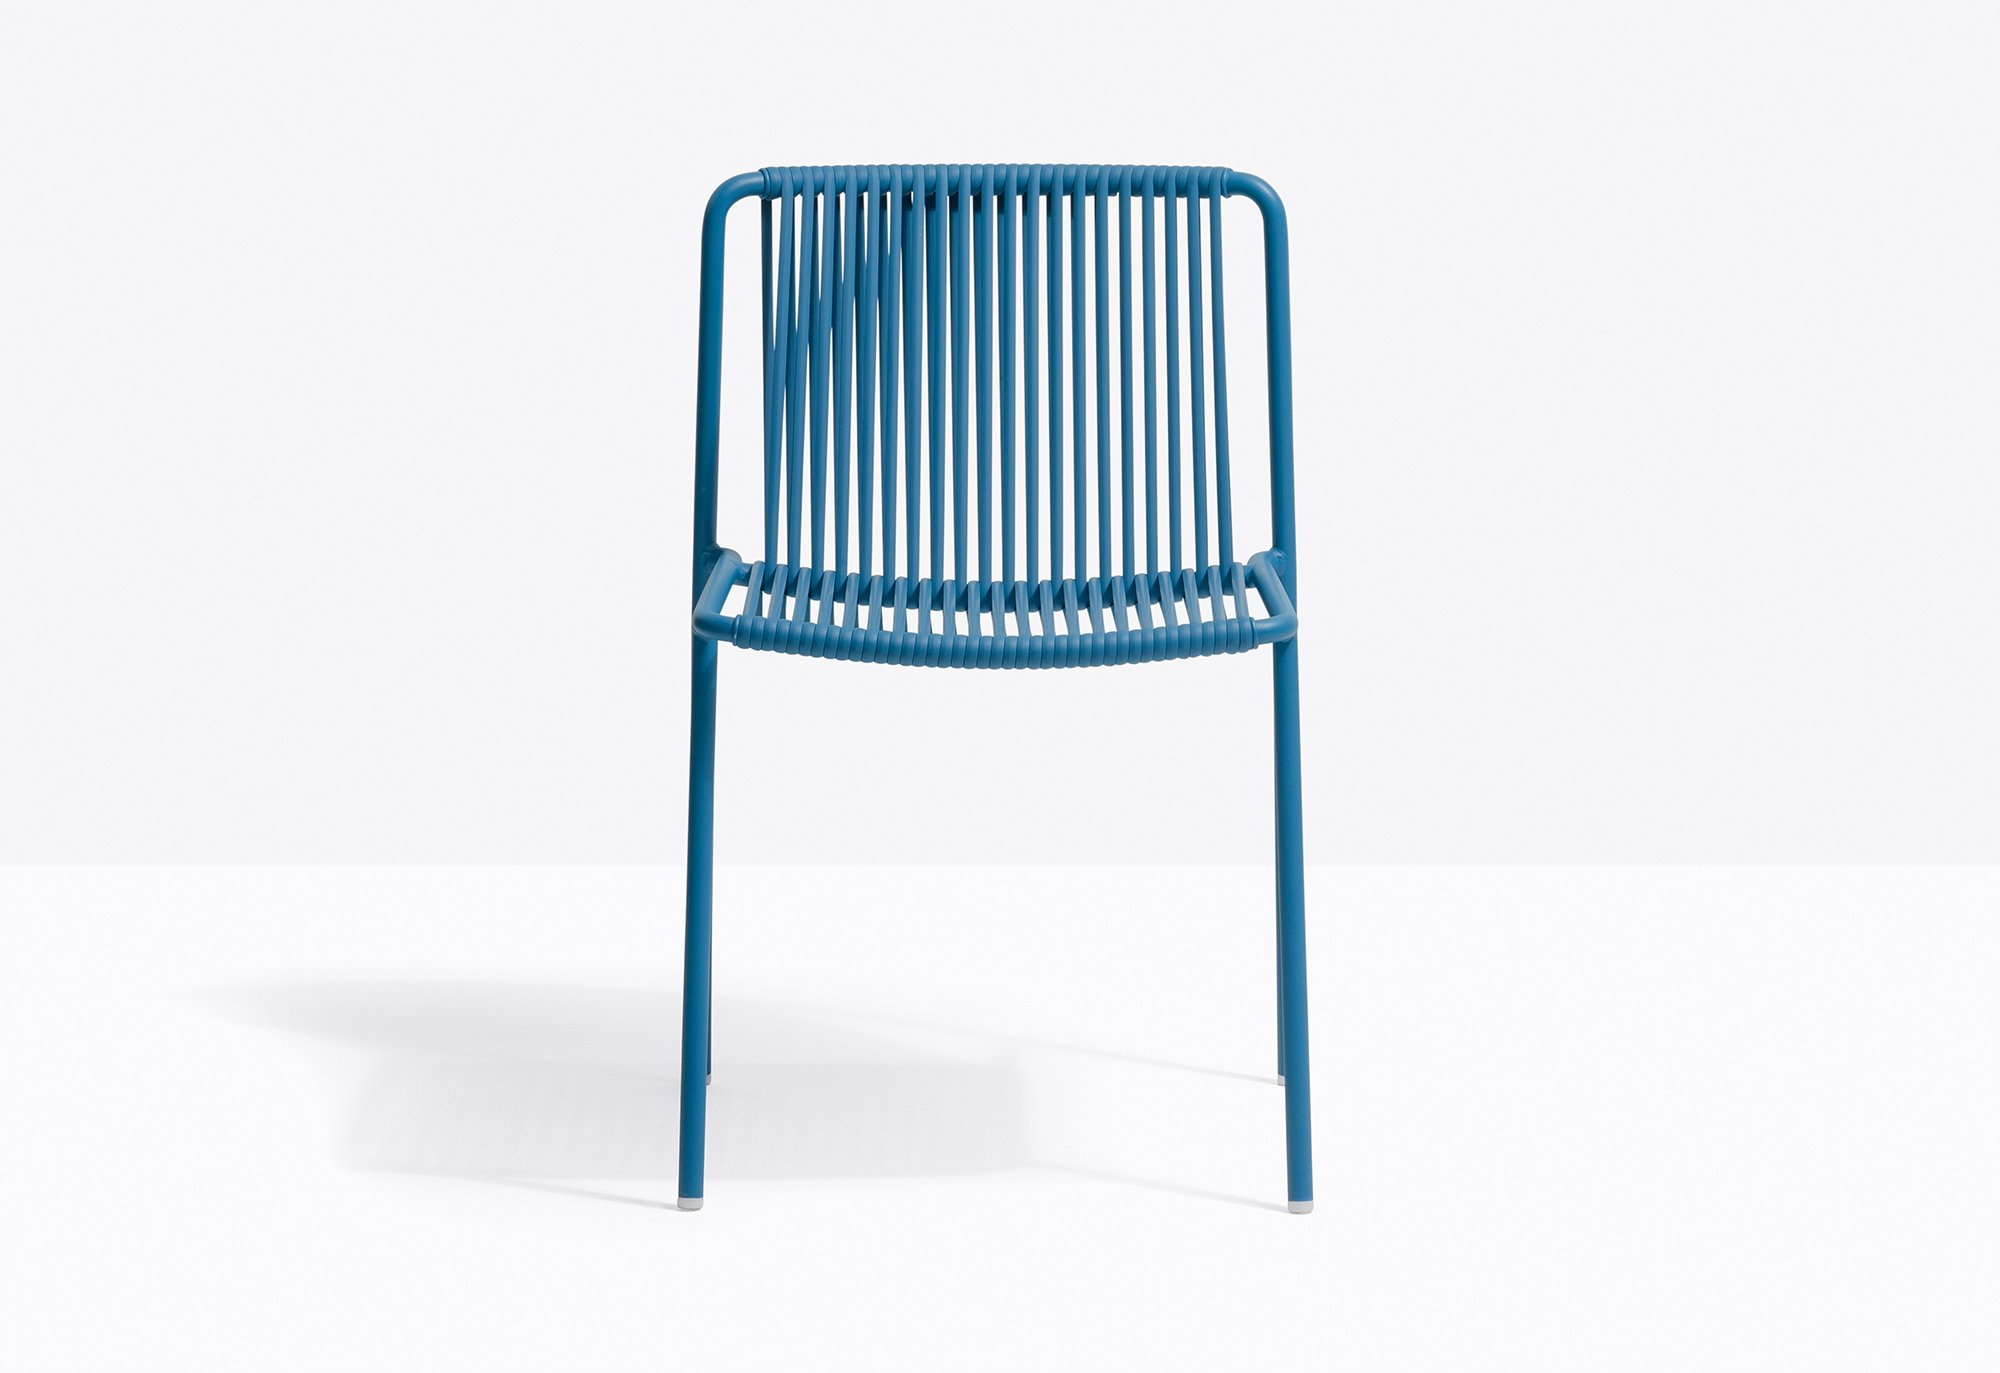 Tribeca Chair from Pedrali, designed by CMP Design